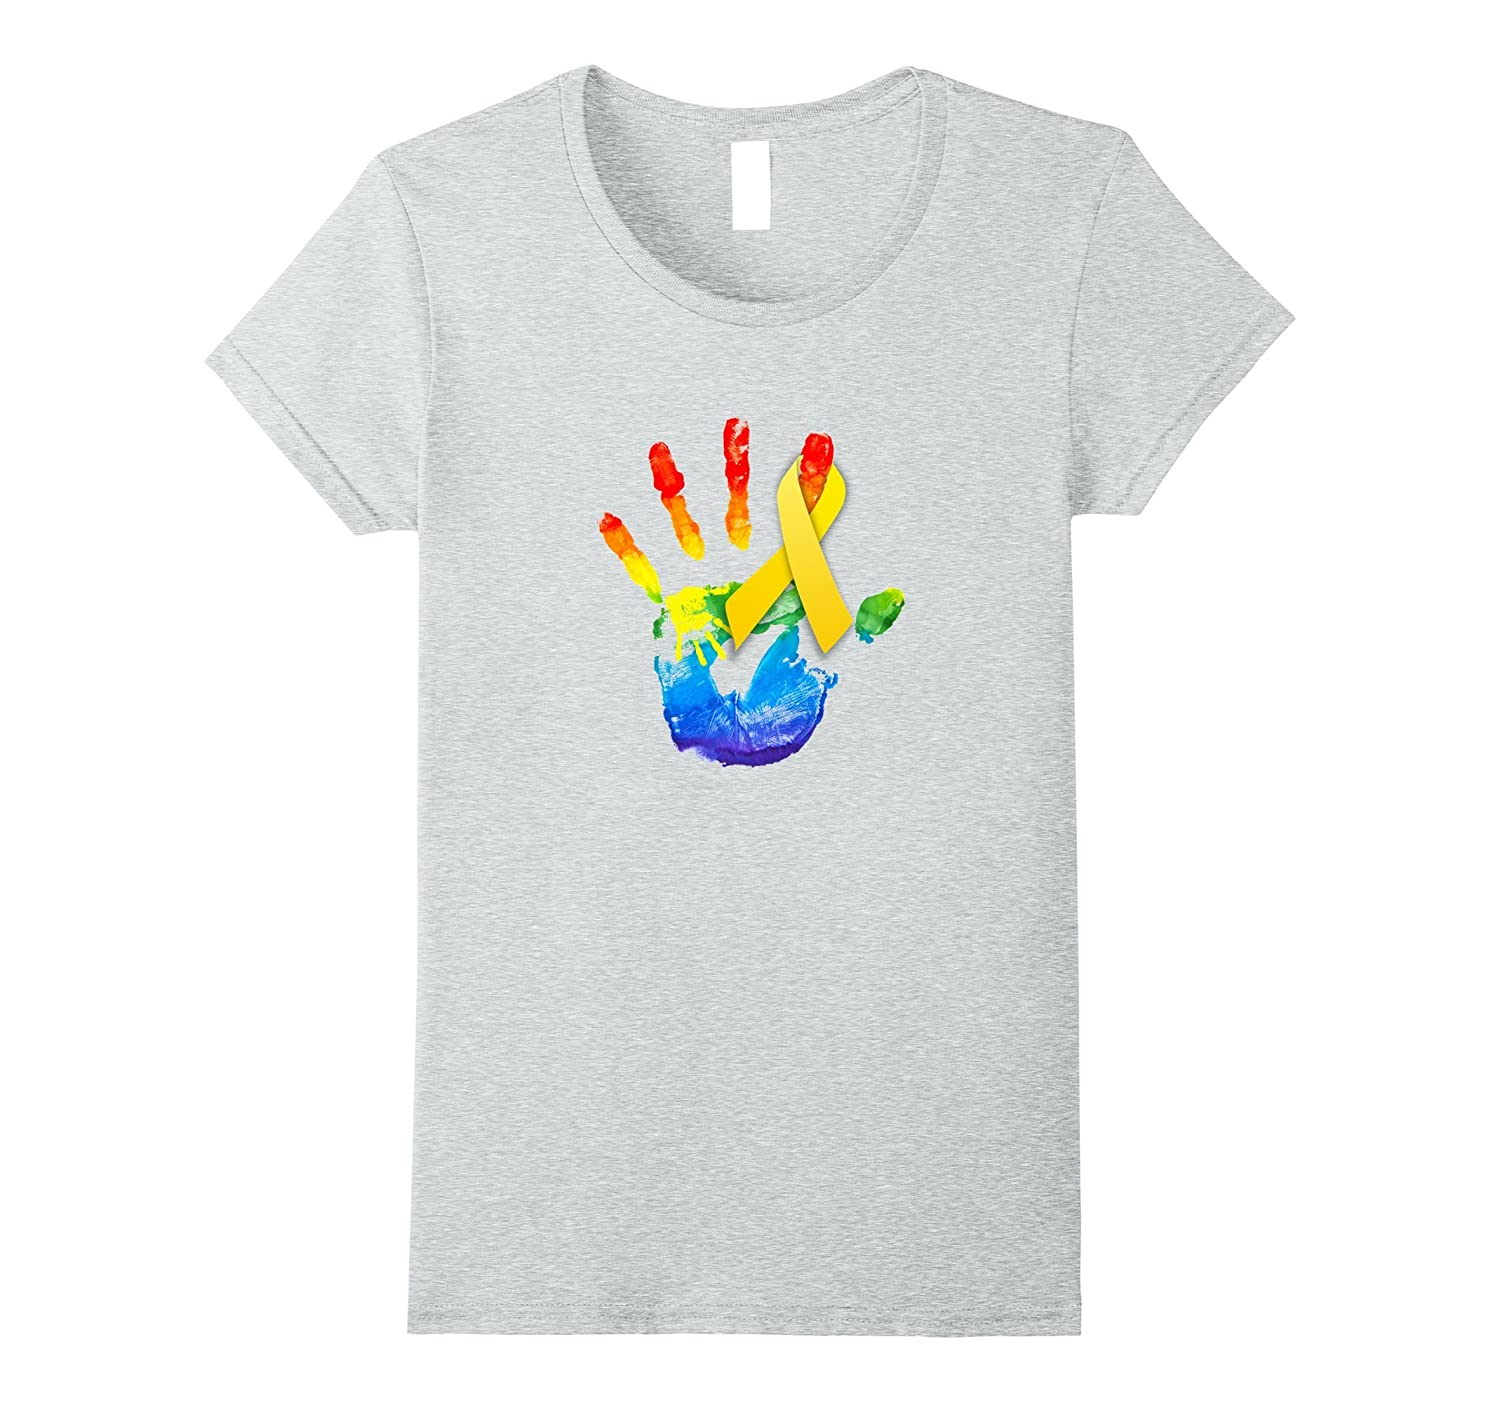 Ribbon yellow with color hands artwork Shirt Cancer T-shirt